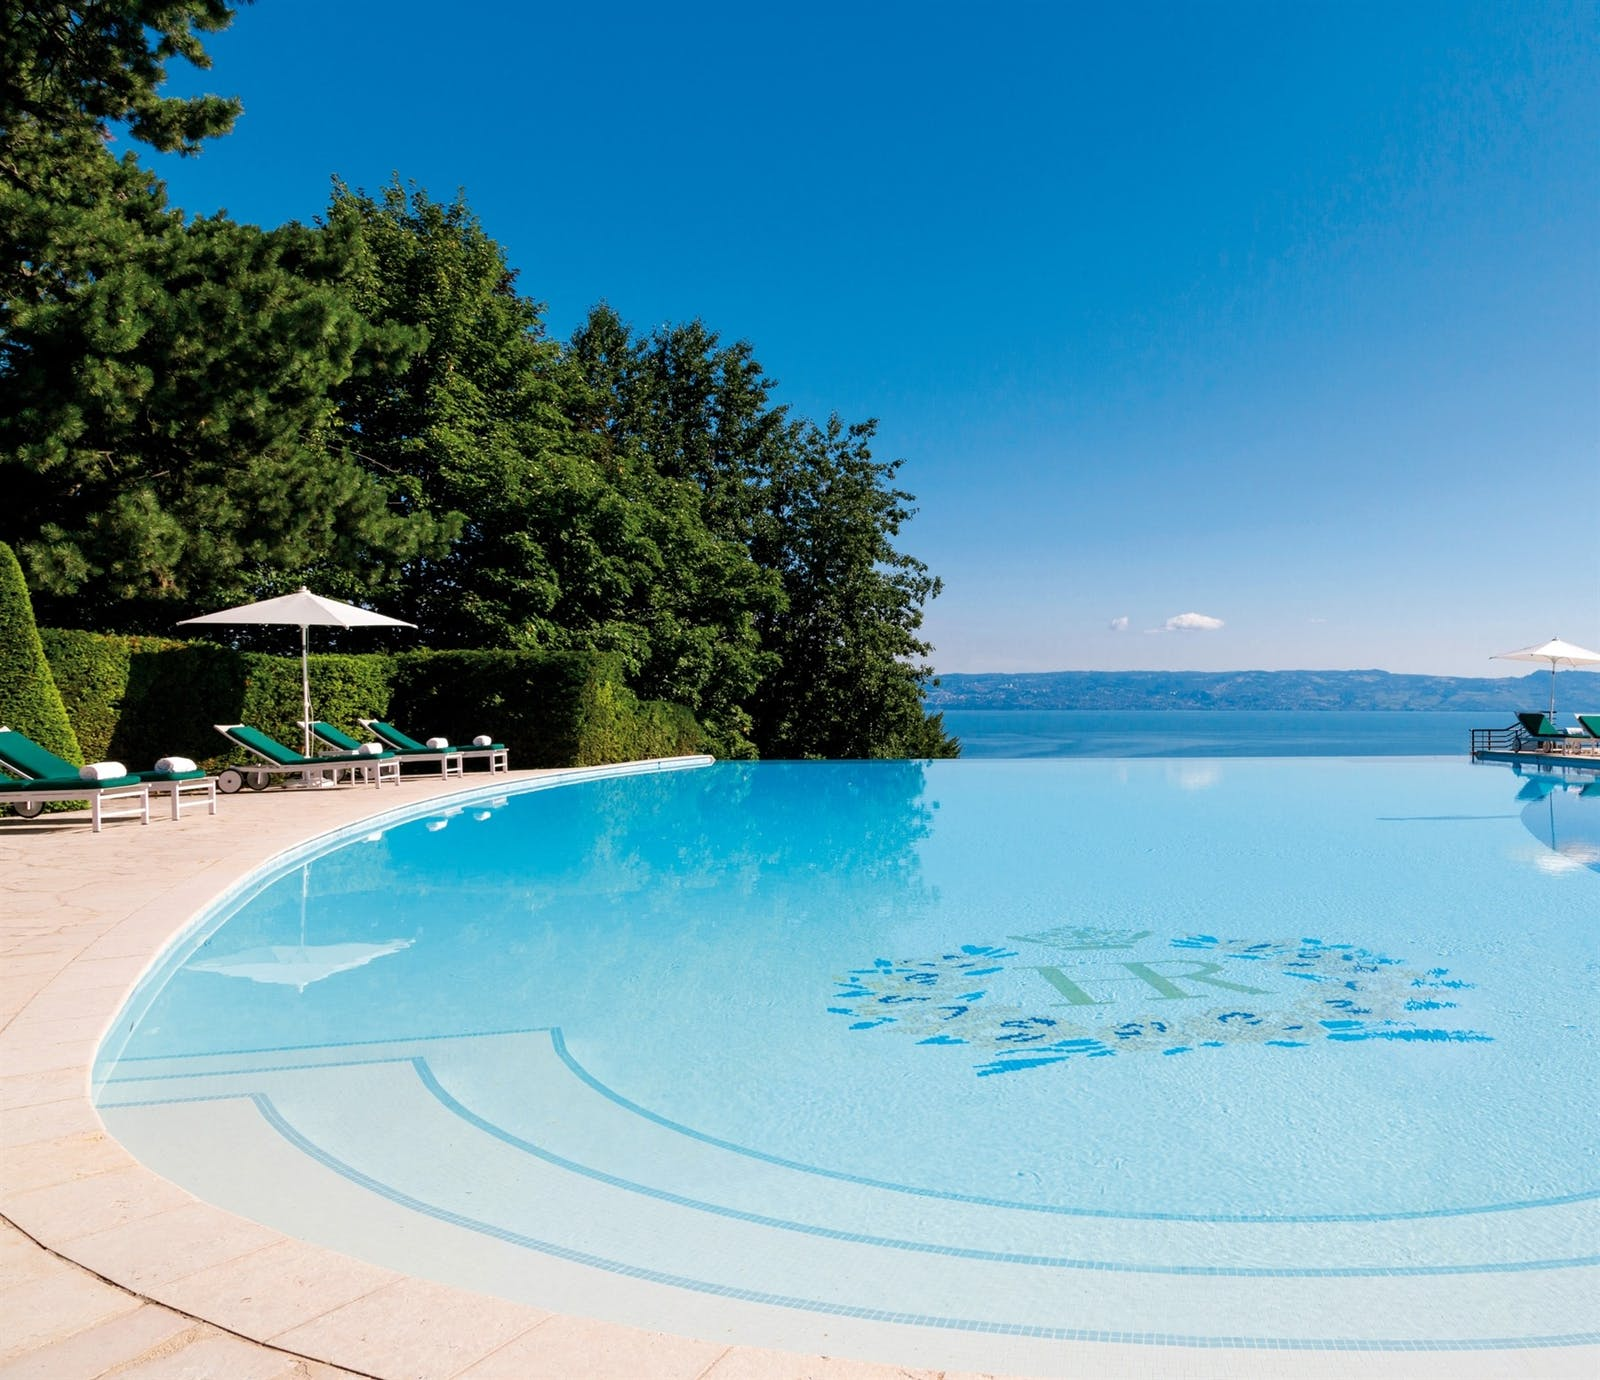 Outdoor Swimming Pool, Hotel Royal, Evian Resort, Lake Geneva, France